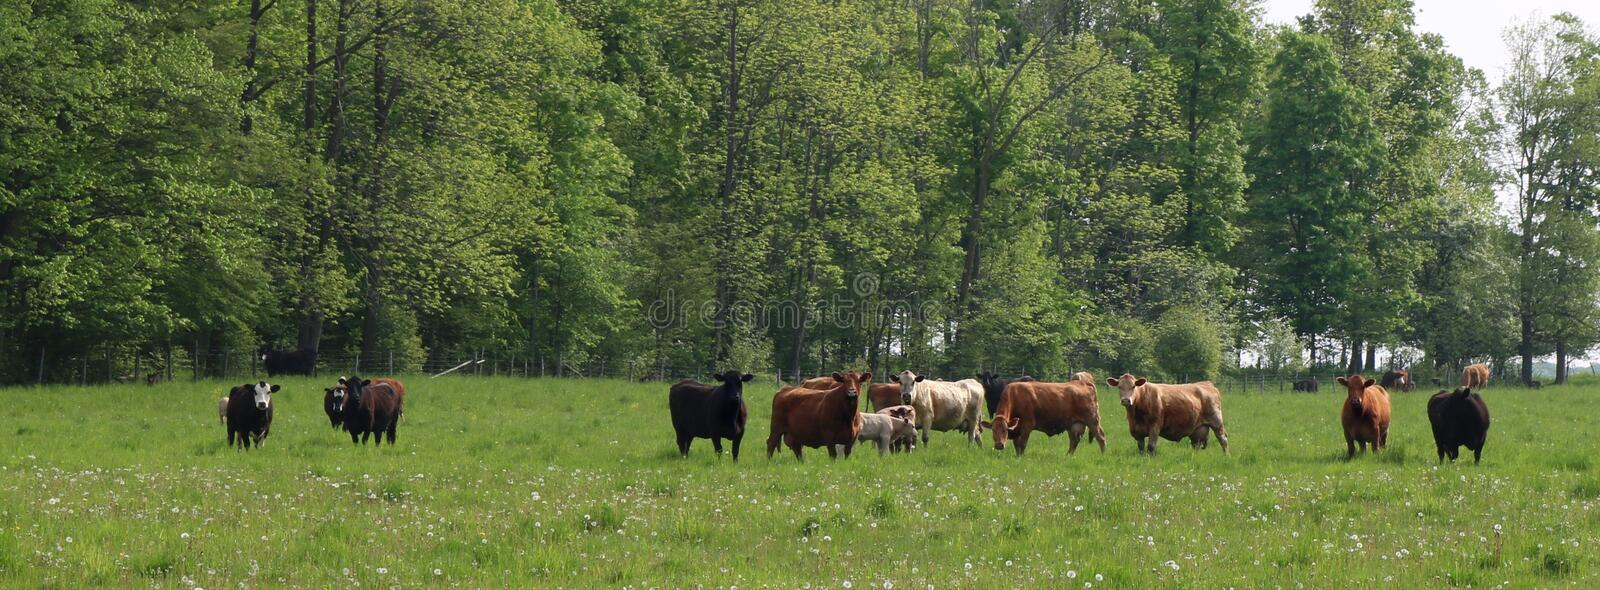 Beef cows with their calves in the spring meadow. Herd of variety of breeds and colors of beef cows with their calves in the field stock photography